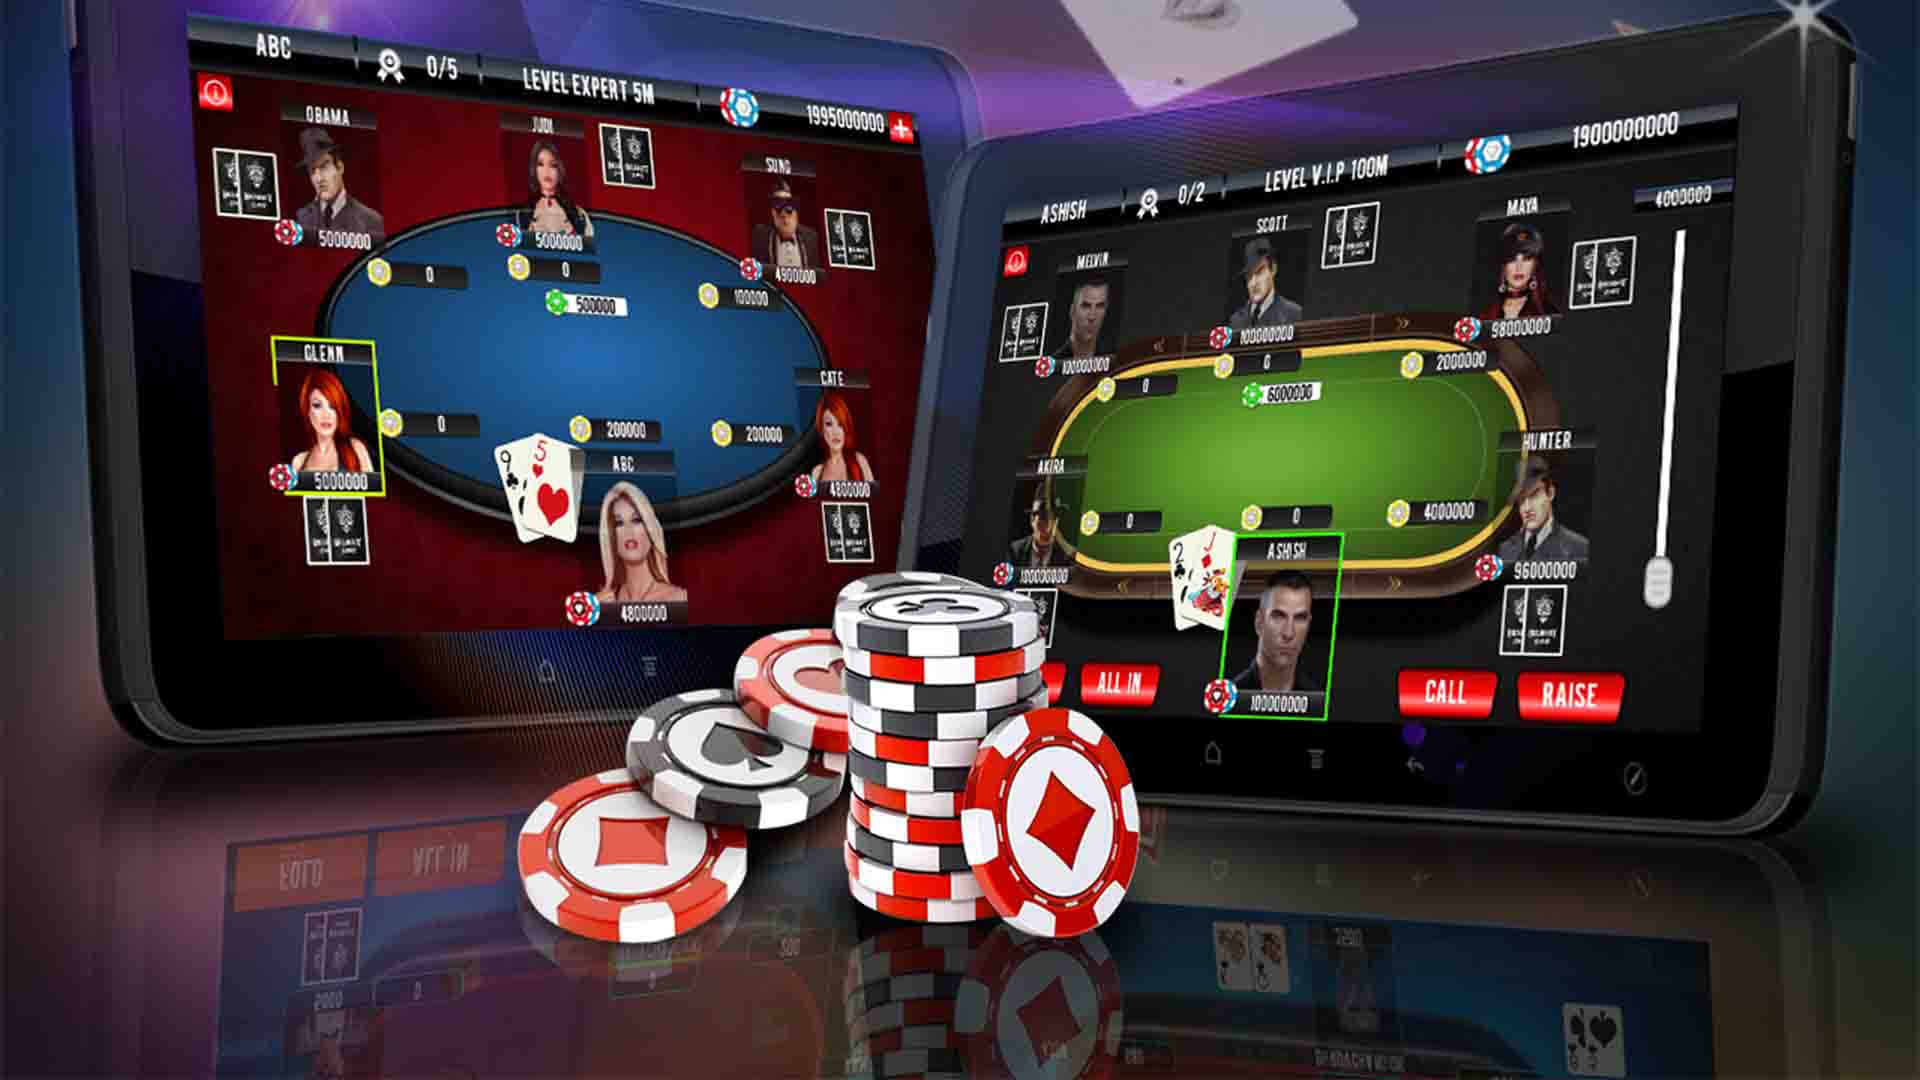 Reasons for the excitement of internet poker video games